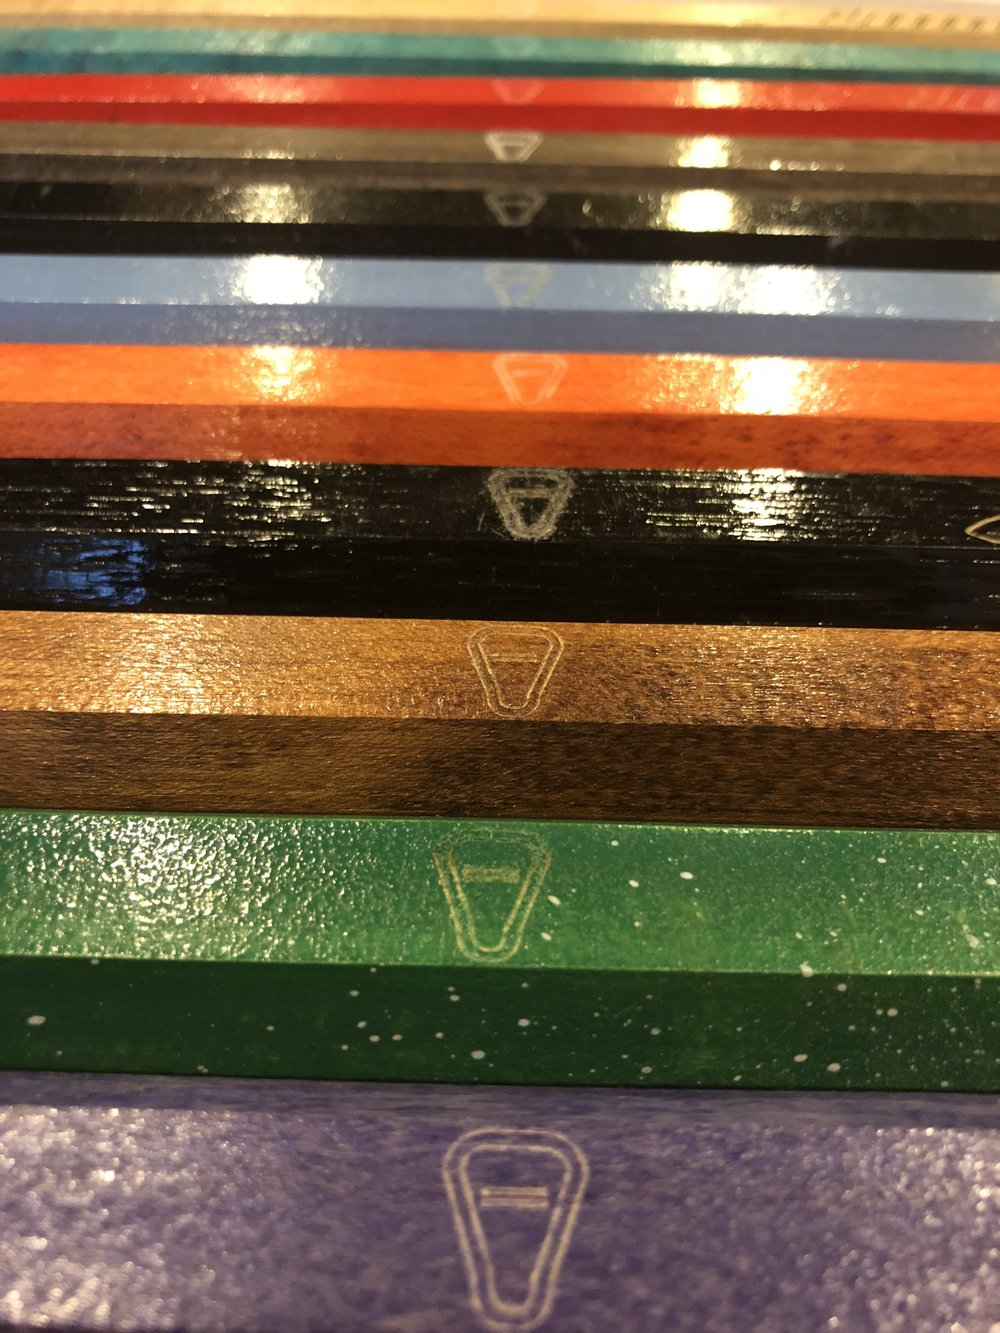 Equality in Lacrosse LOGO engraved on every stick -